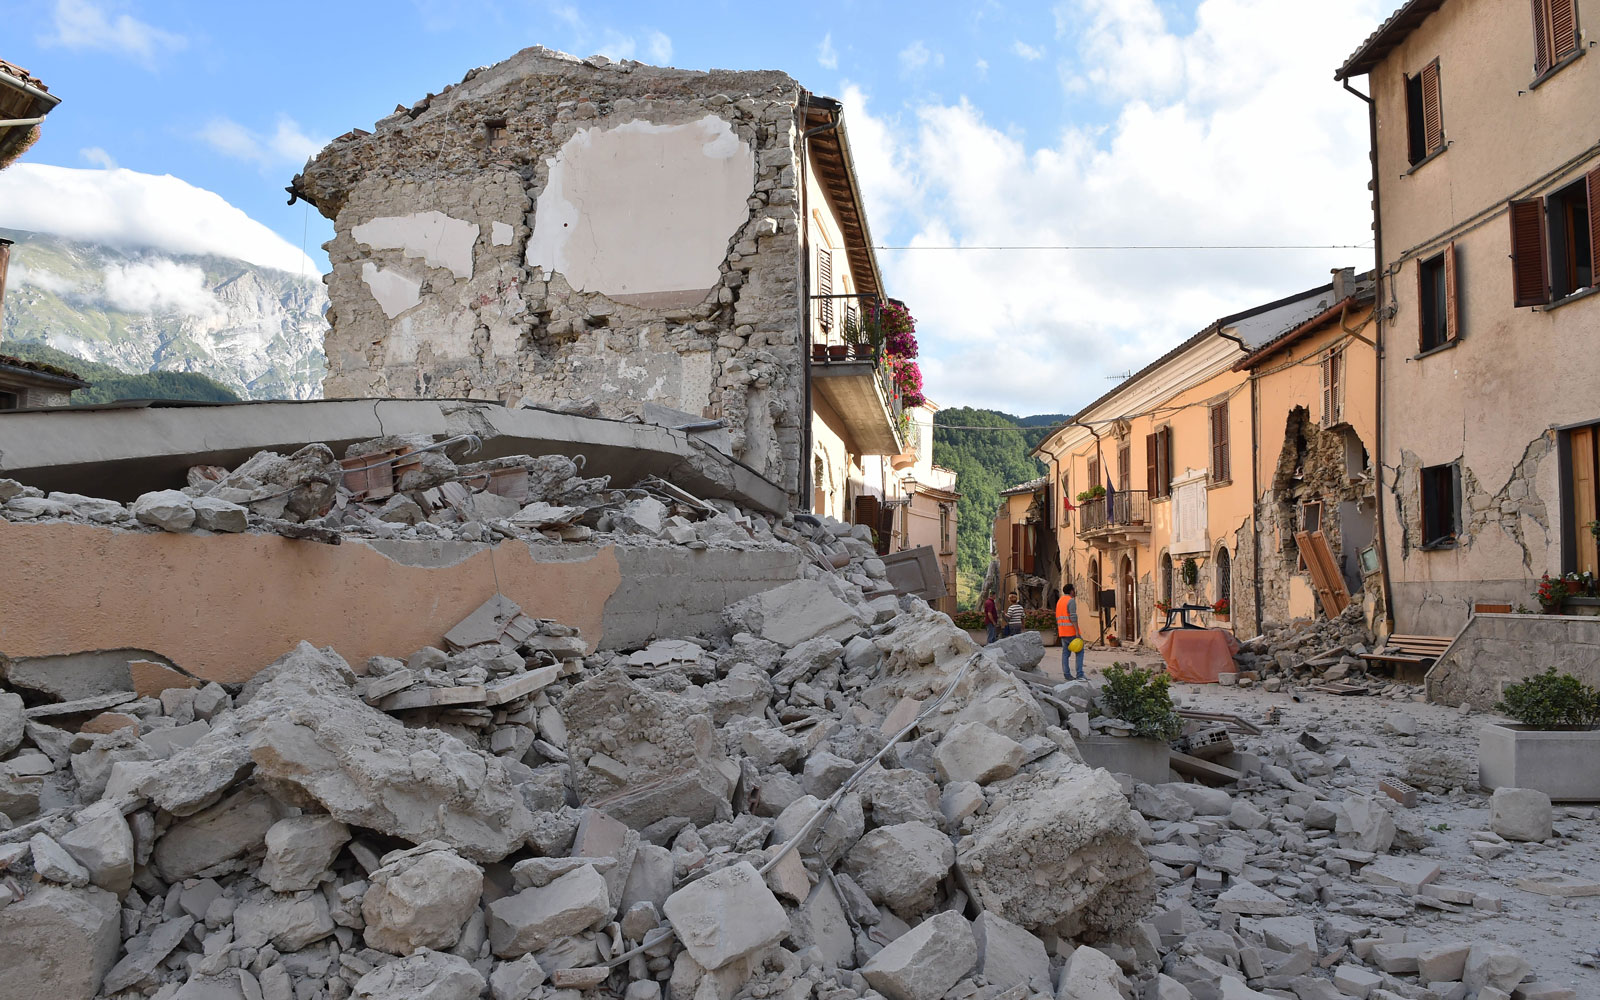 Devastation following an earthquake in central Italy.